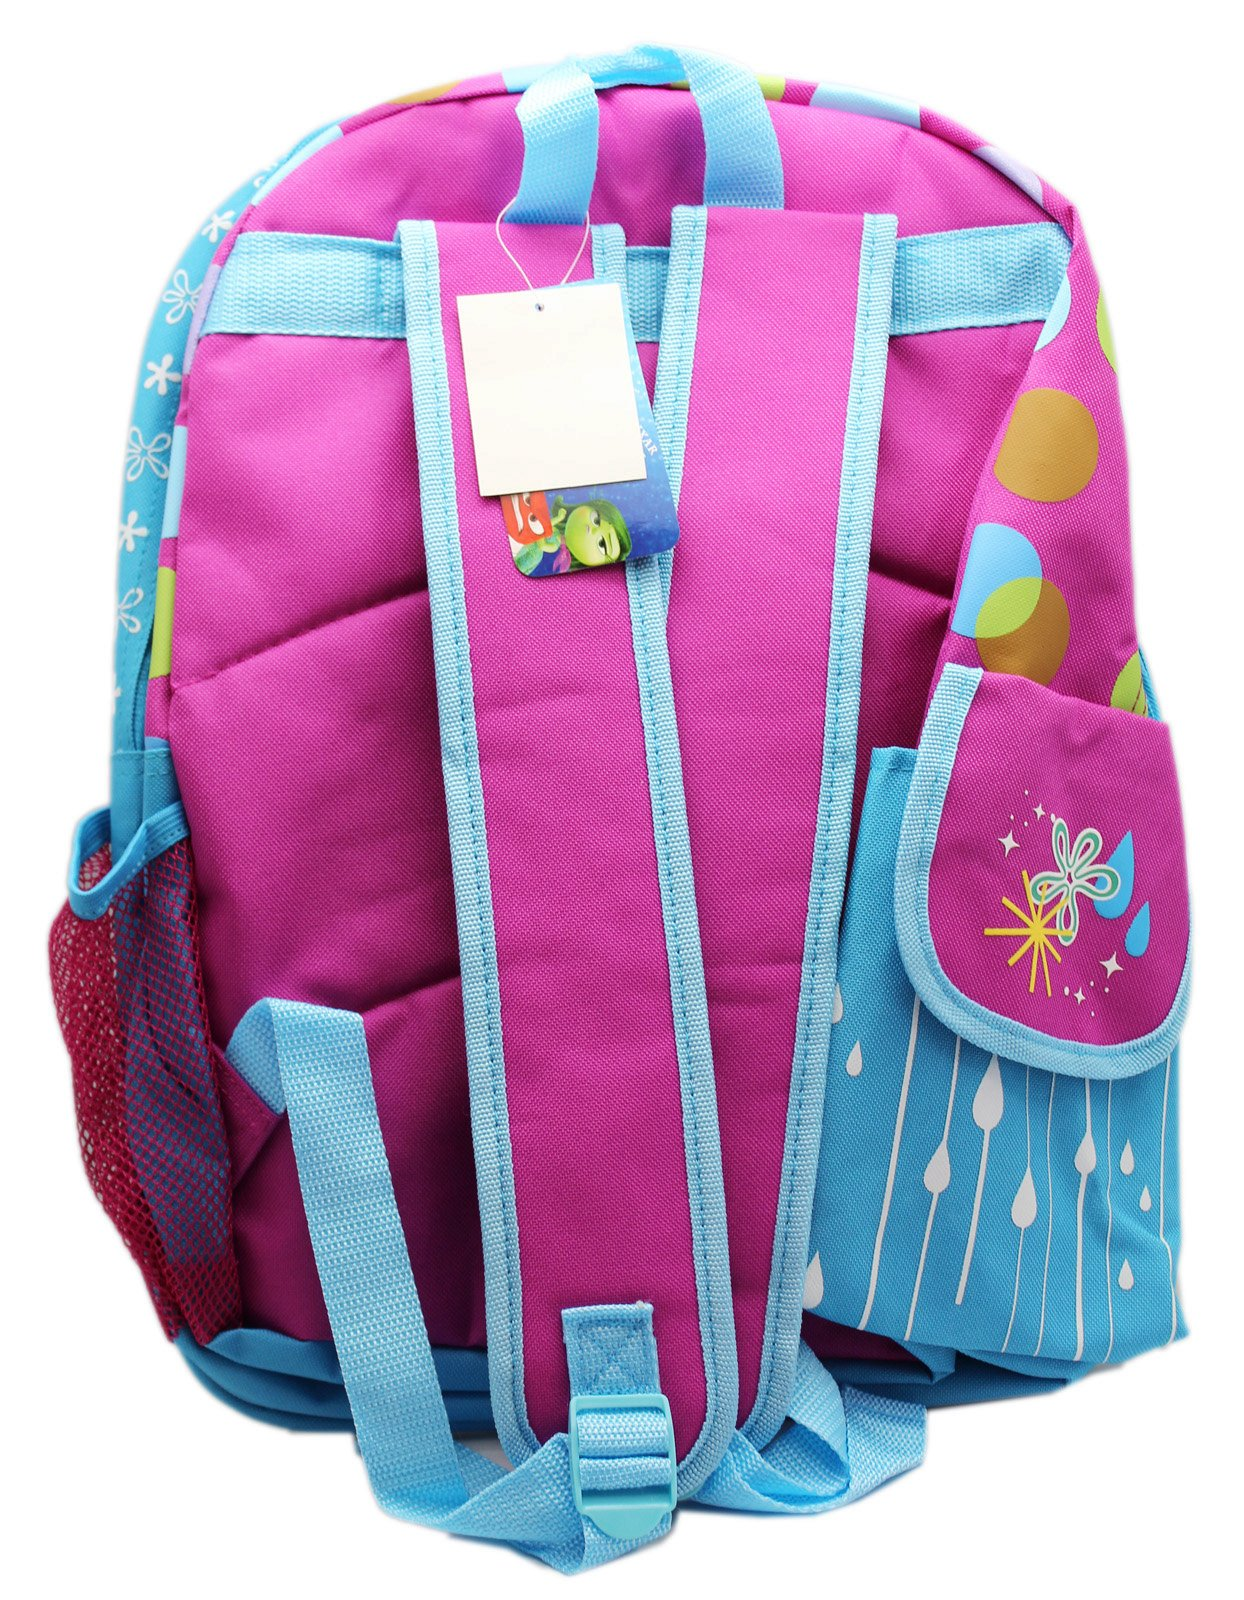 Disney Girl's Inside Out Large 16'' inches Backpack - Licensed - BRAND NEW